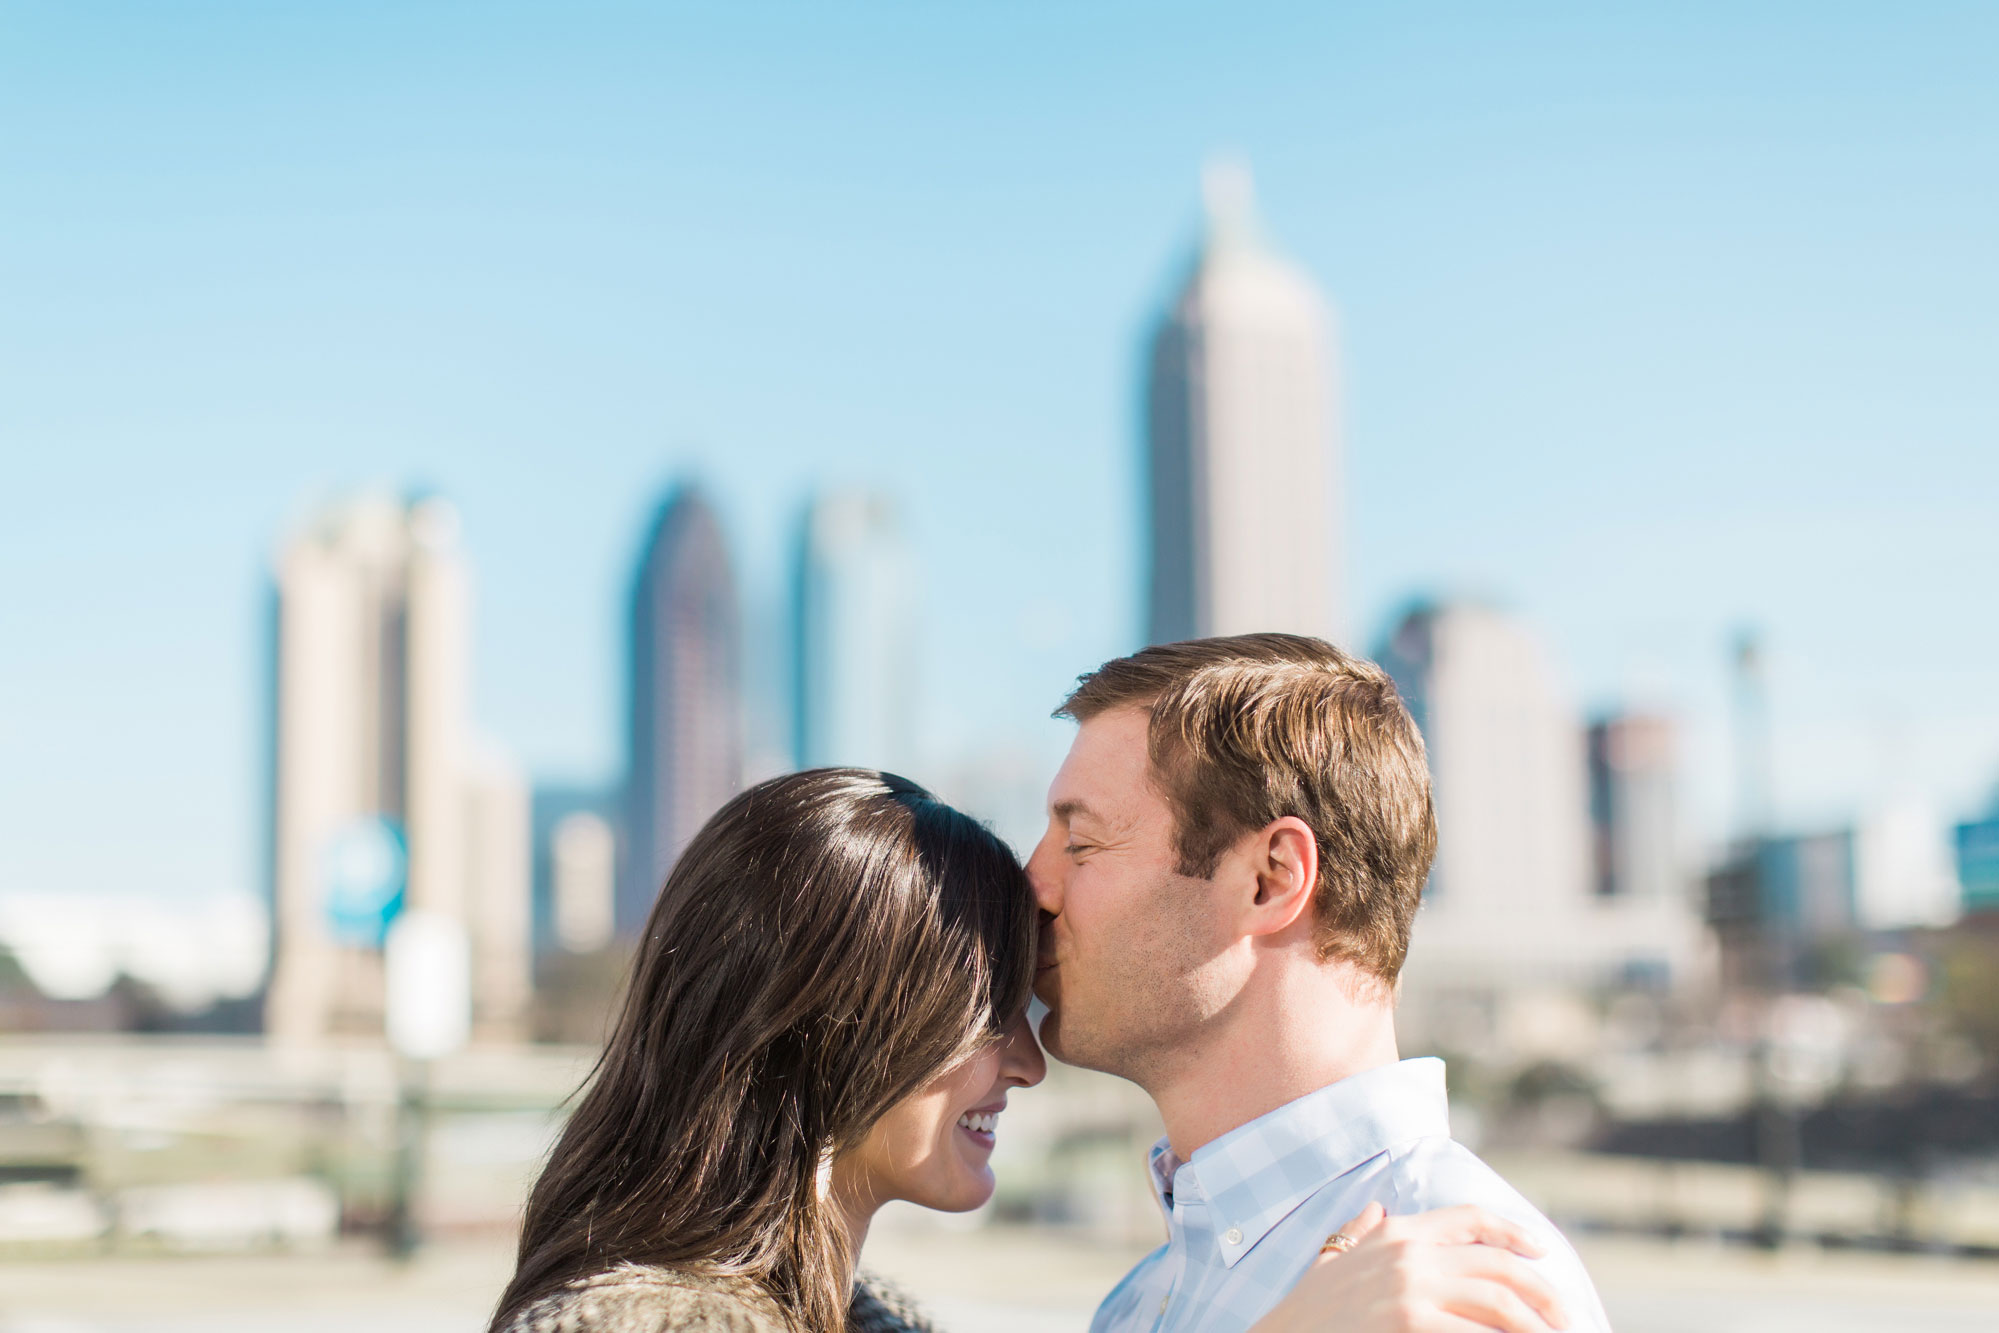 Vue Photography engagement session in Atlanta with skyline